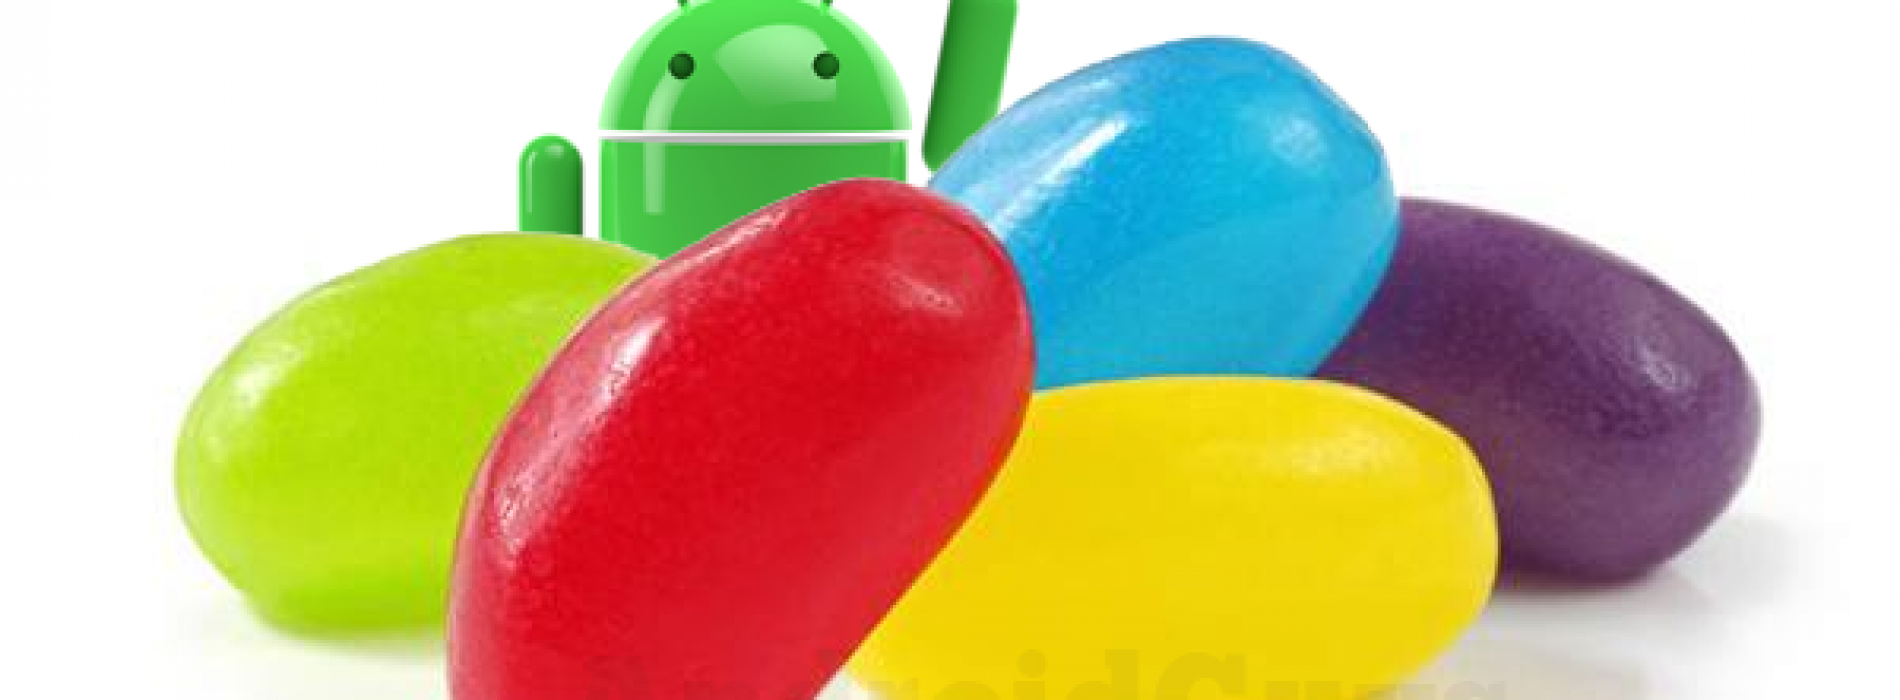 Nexus S may be getting Jelly Bean update rollout in the next few days